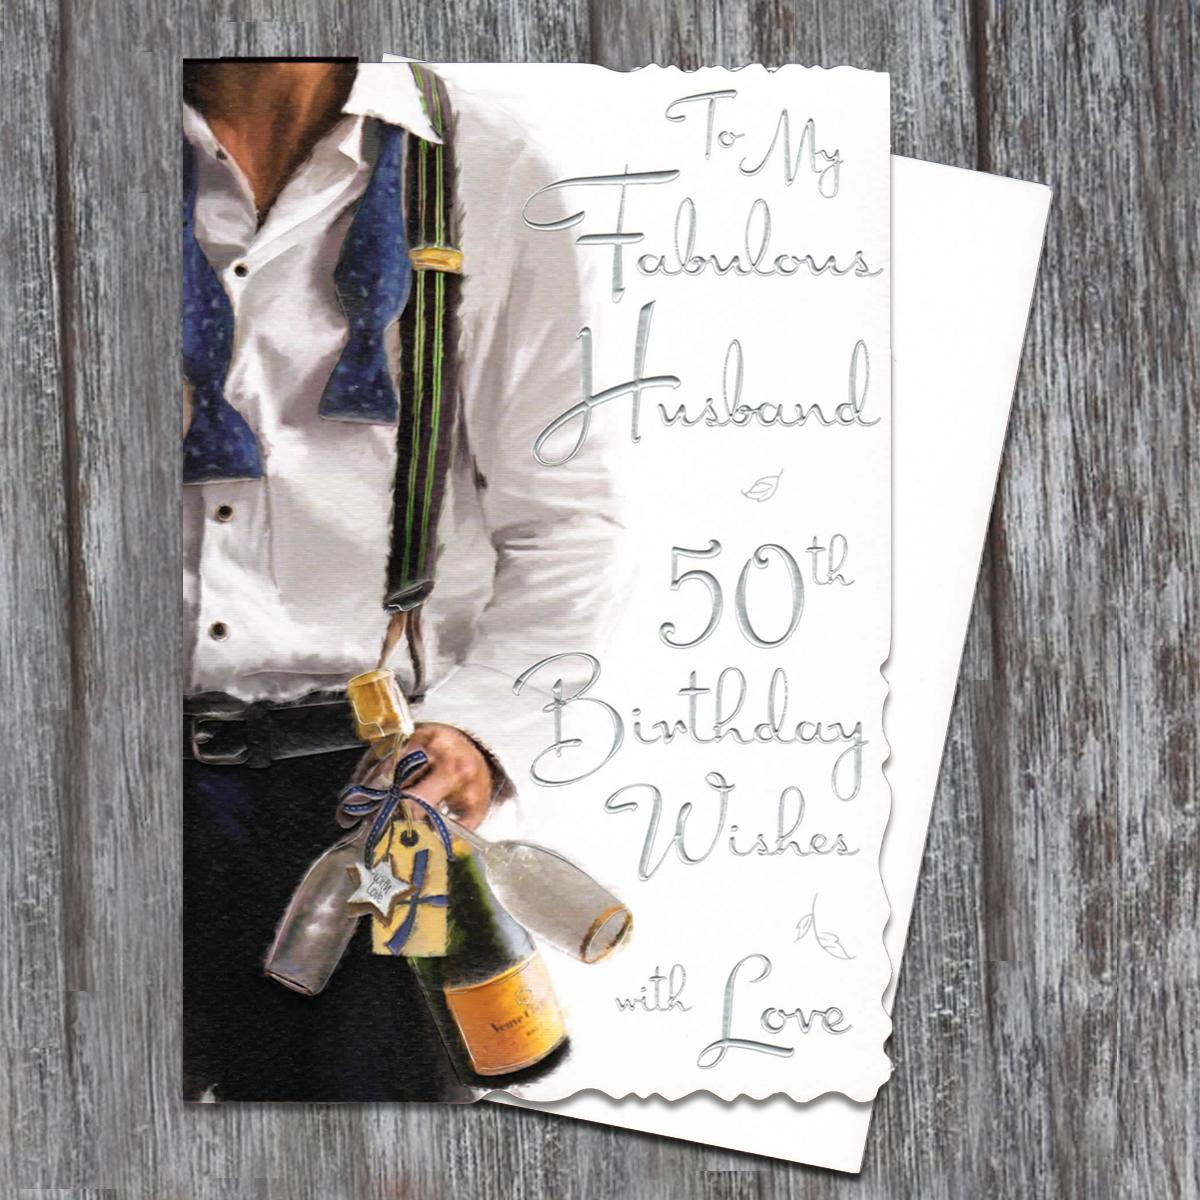 Husband Age 50 Birthday Card Alongside White Envelope